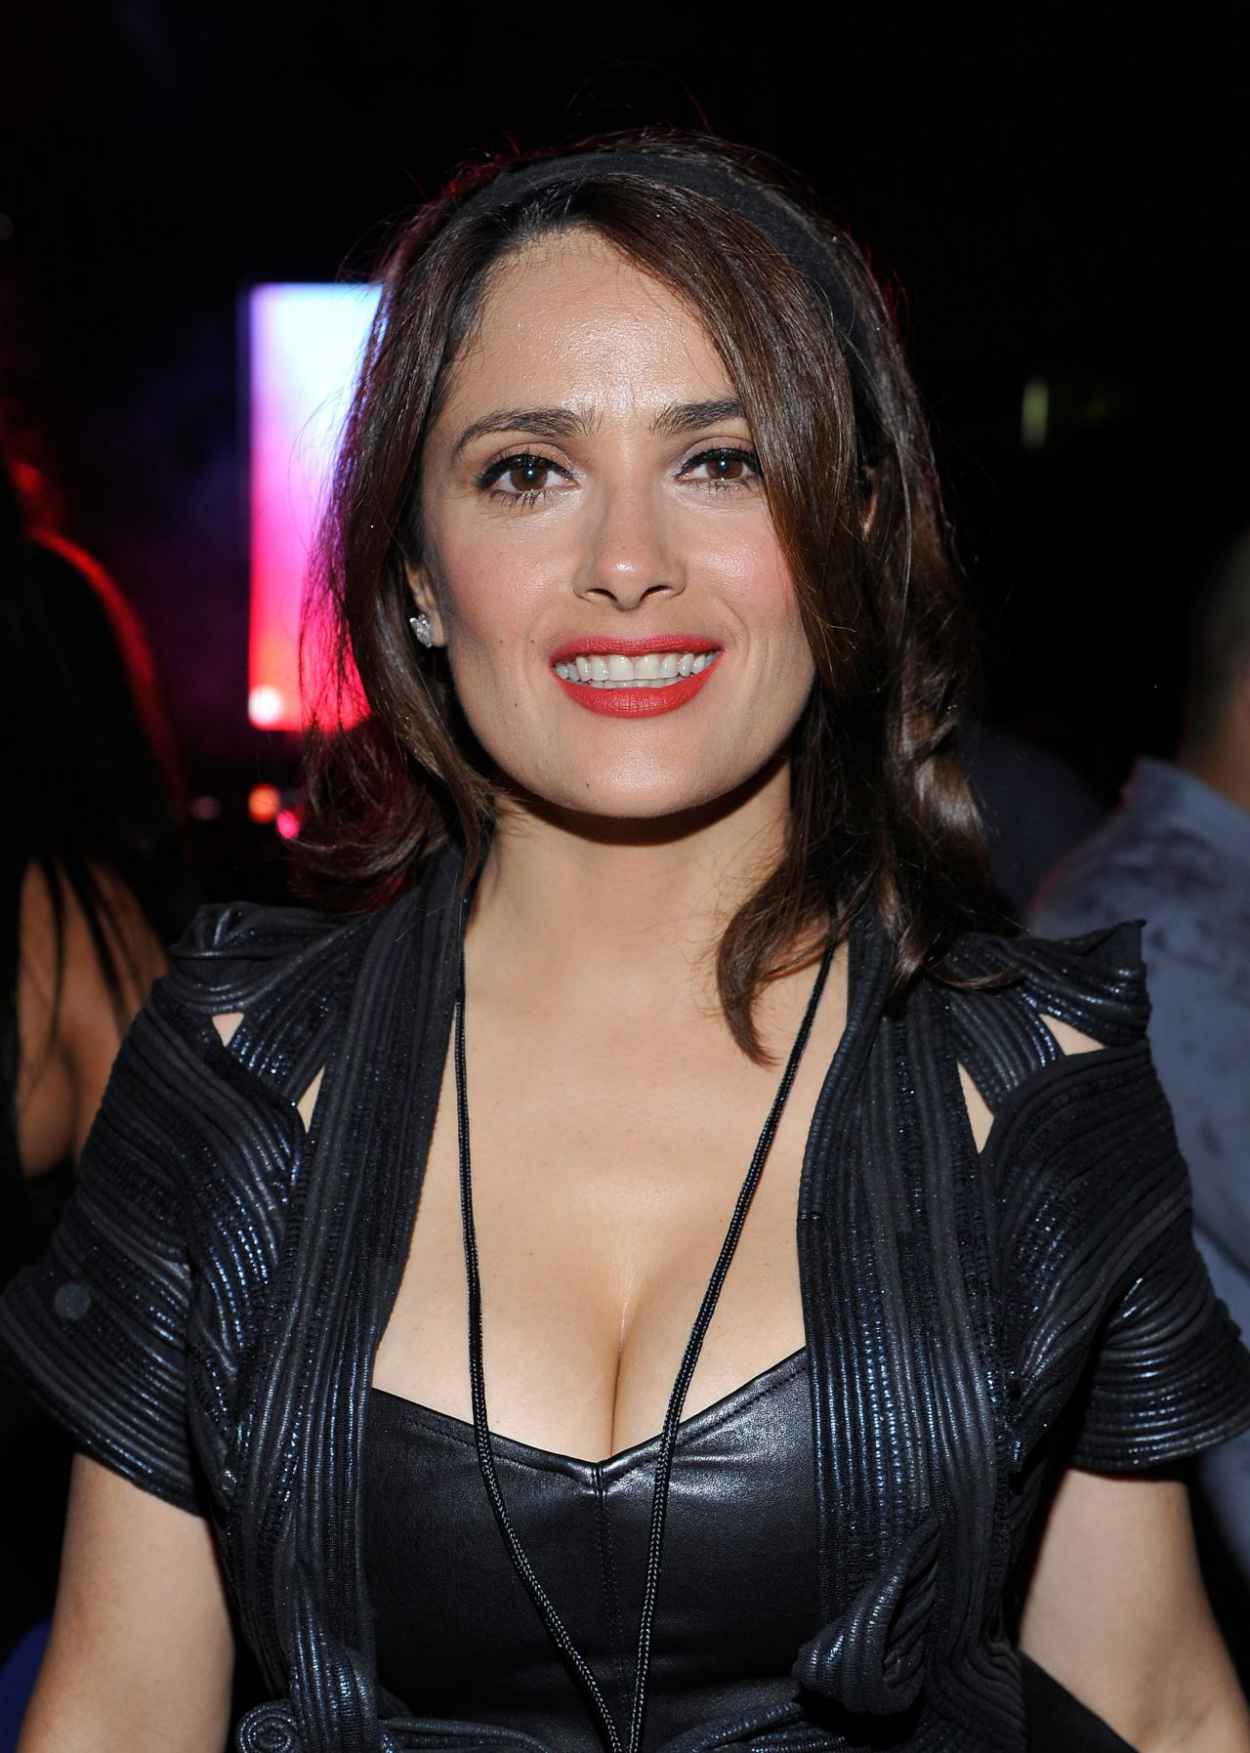 Salma Hayek Night Out Style - DUSSE VIP Lounge at the On The Run Tour in Pasadena-1